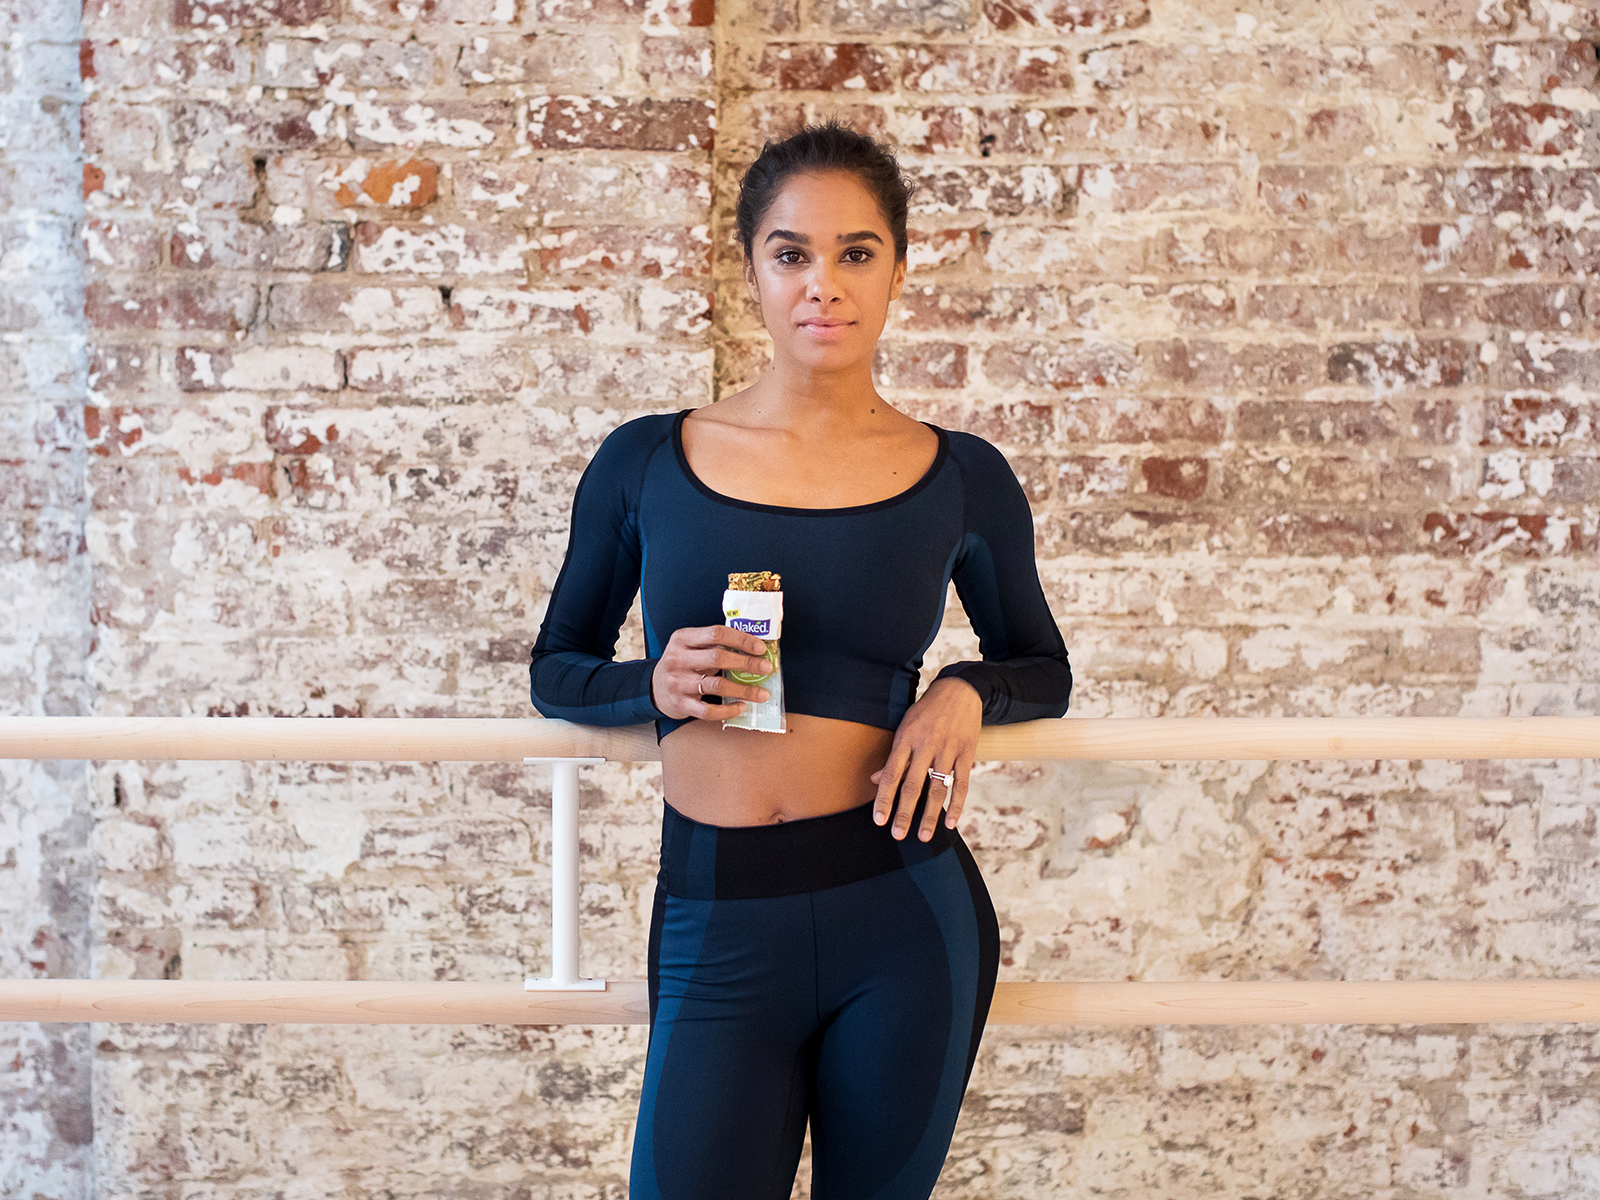 What Misty Copeland Eats to Feel Empowered